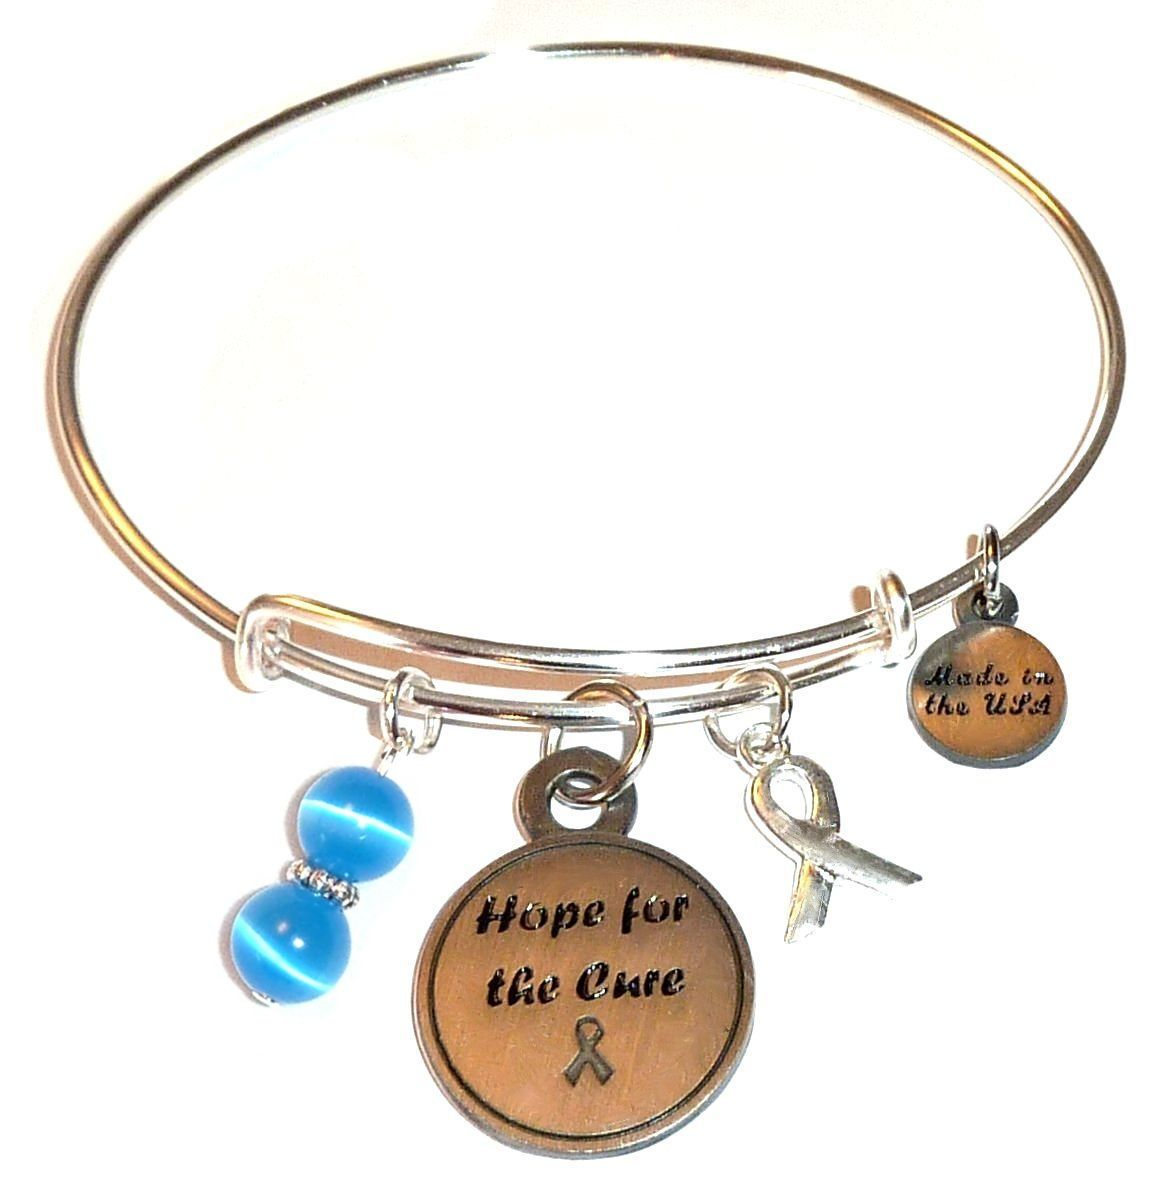 Colon Cancer Awareness Bangle Bracelet